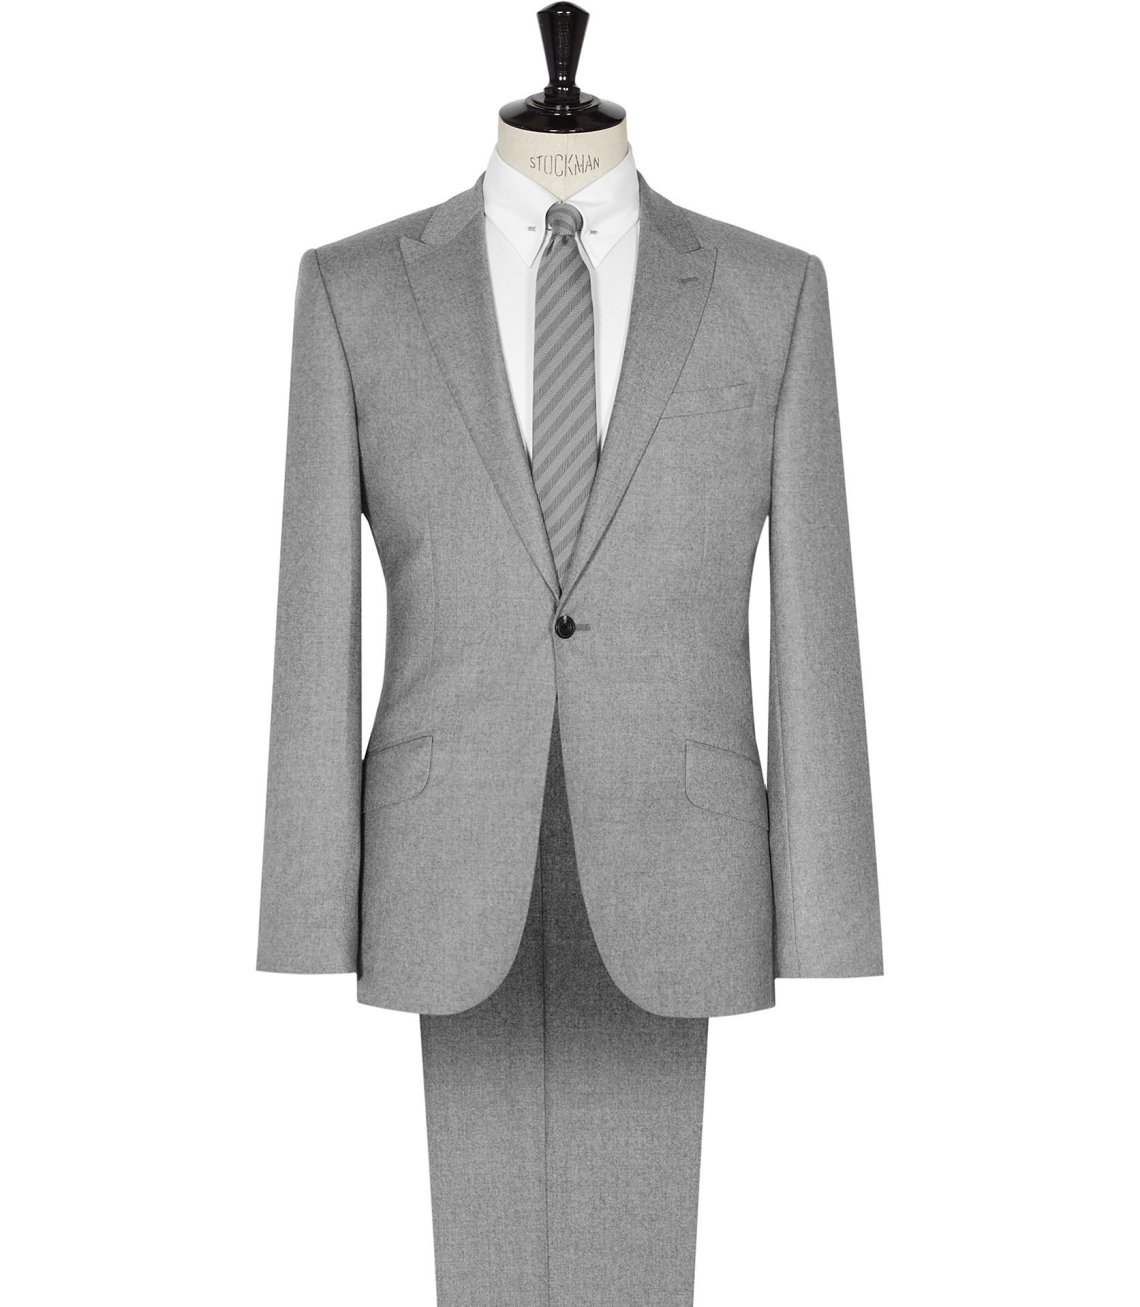 Reiss jacket in light grey